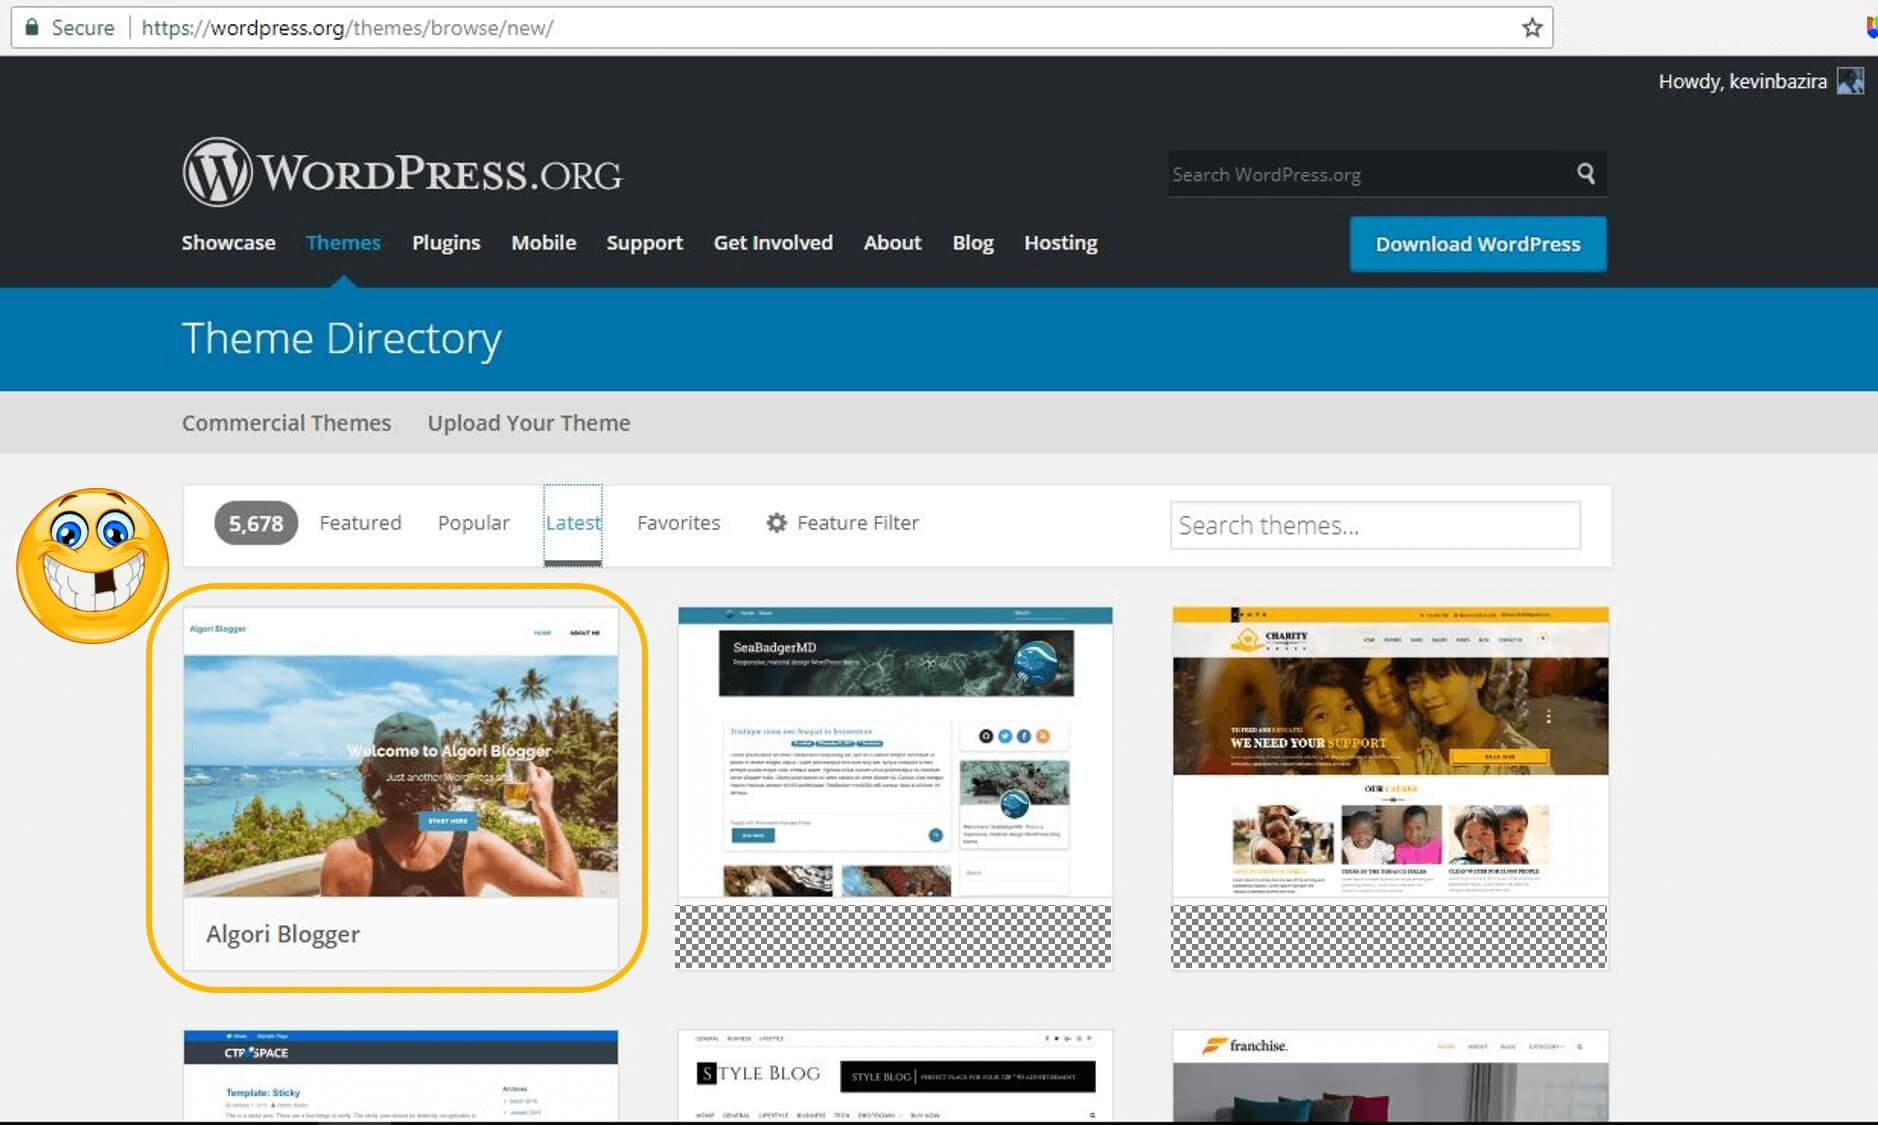 Algori Blogger Live in WP Theme Directory